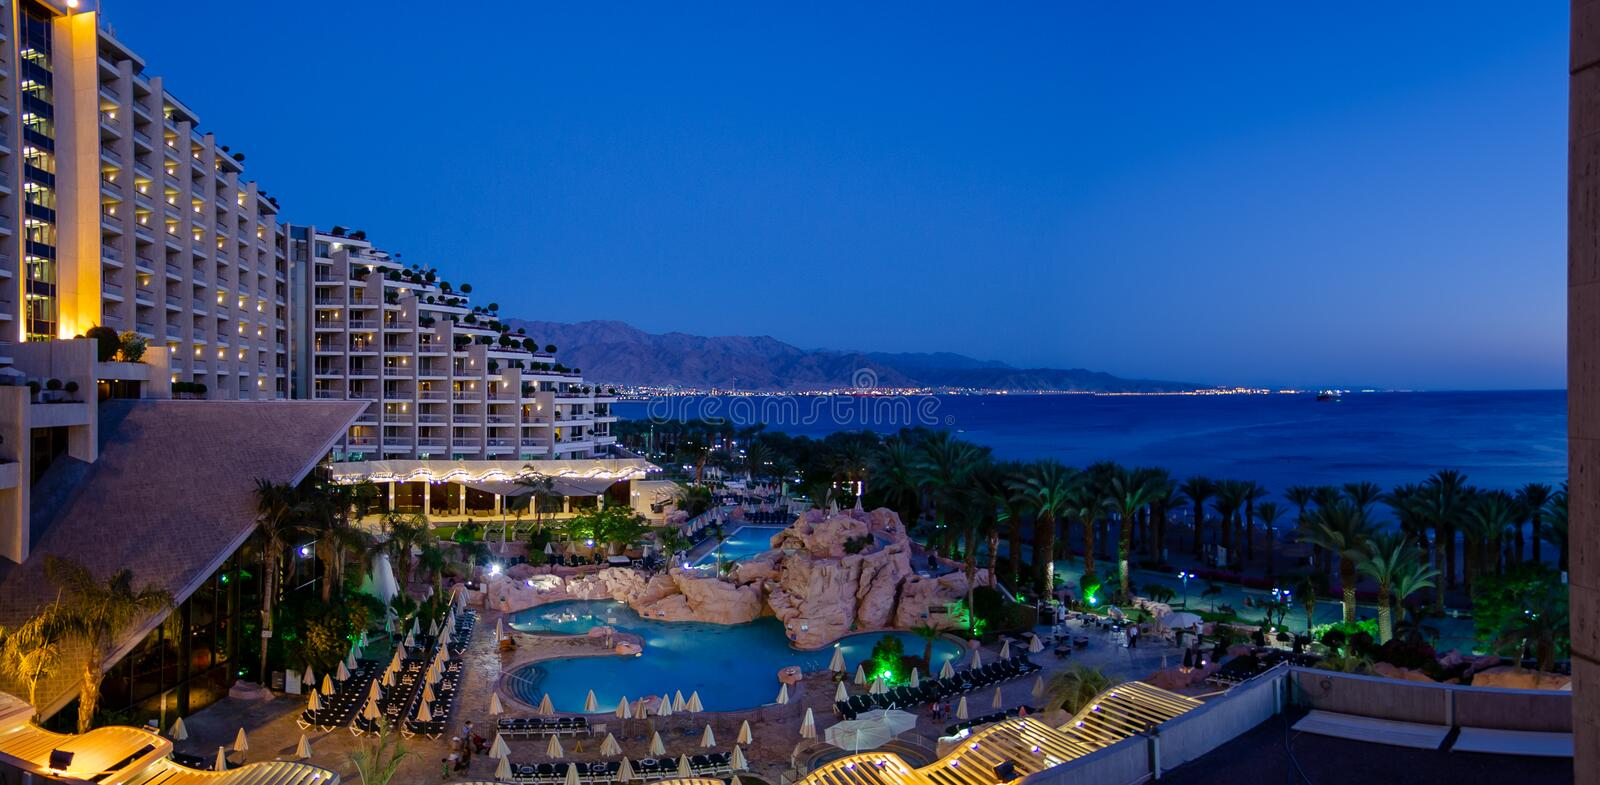 Panoramic view of Dan Hotel and Red Sea at blue hour time, Eilat city, Israel. EILAT, ISRAEL - SEPTEMBER 21, 2012: Panoramic view of Dan Hotel and Red Sea at royalty free stock images